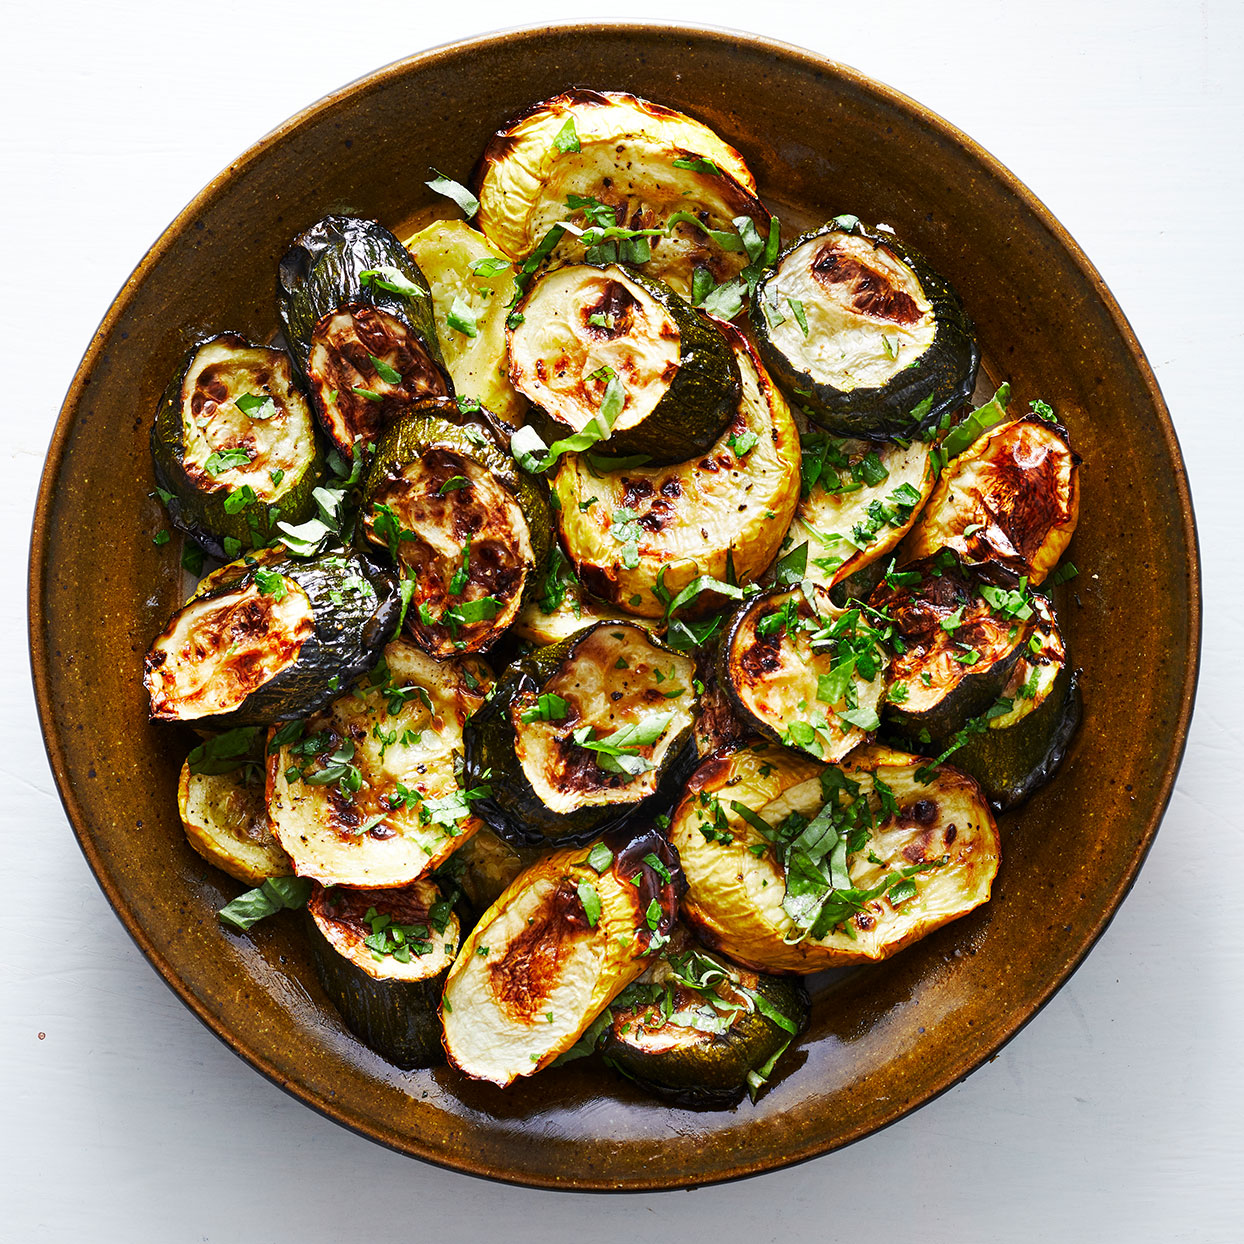 Simple Roasted Zucchini & Squash Trusted Brands